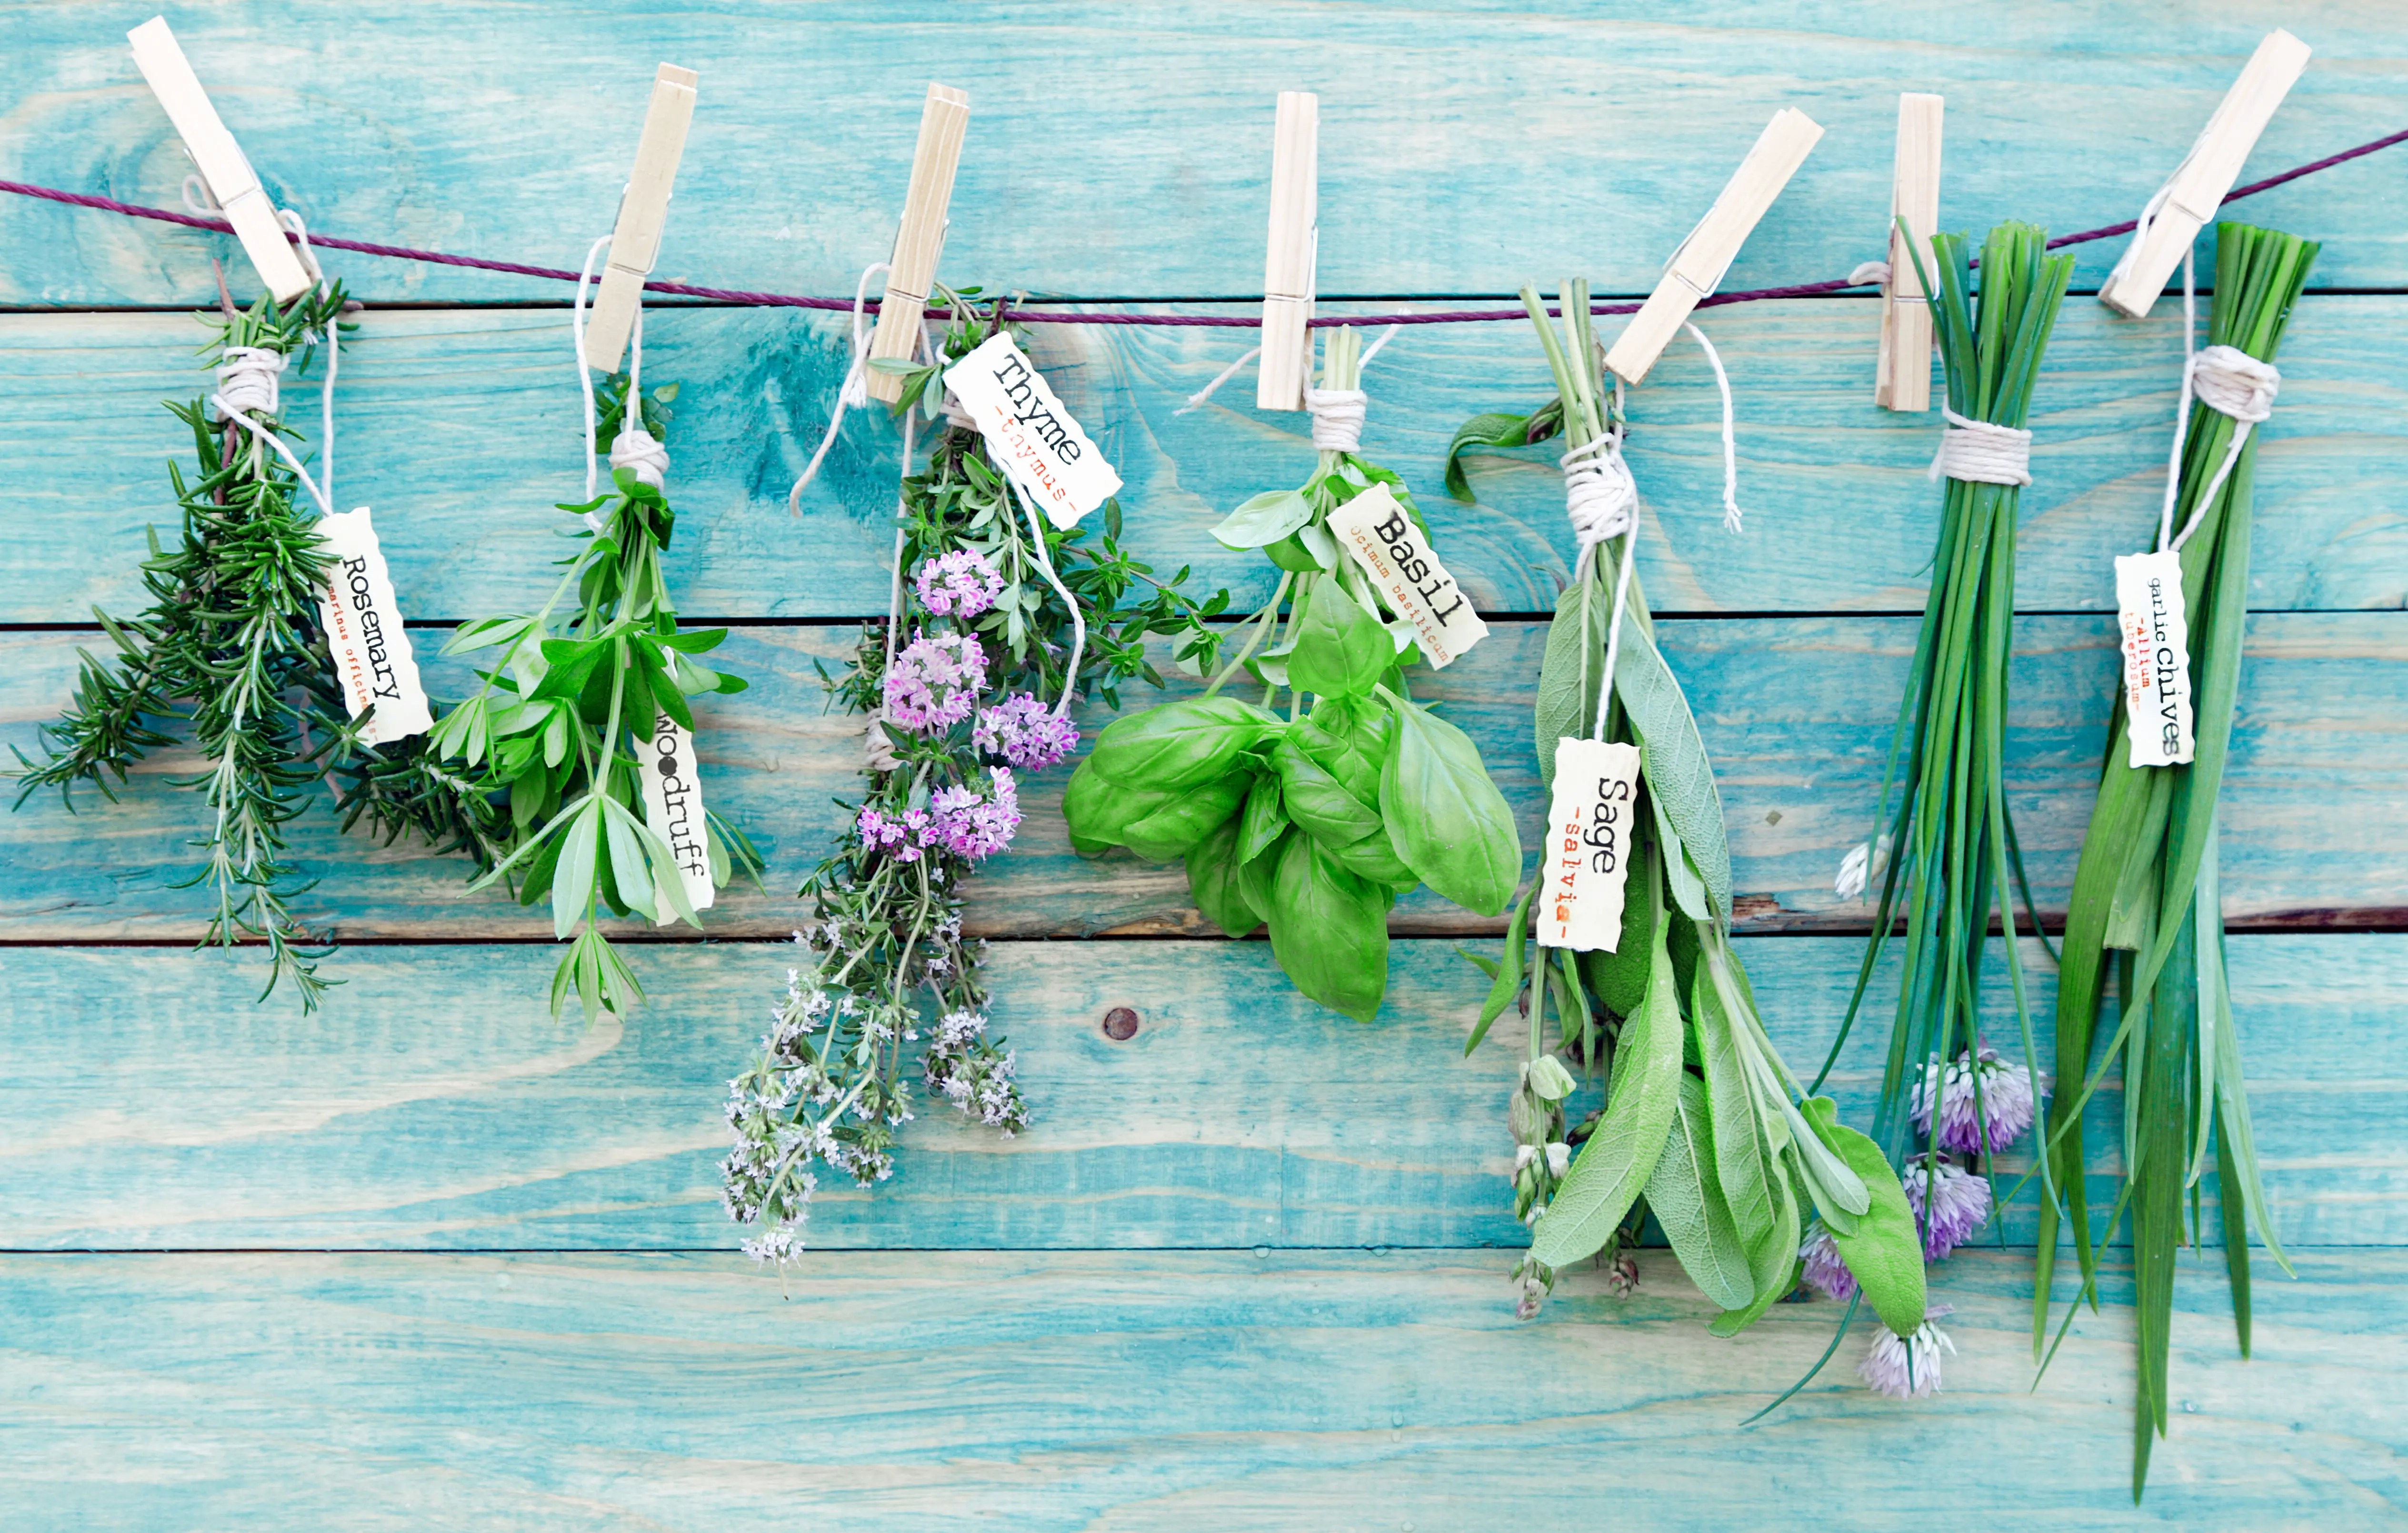 Basil Propagation: How to Propagate Basil From Cuttings